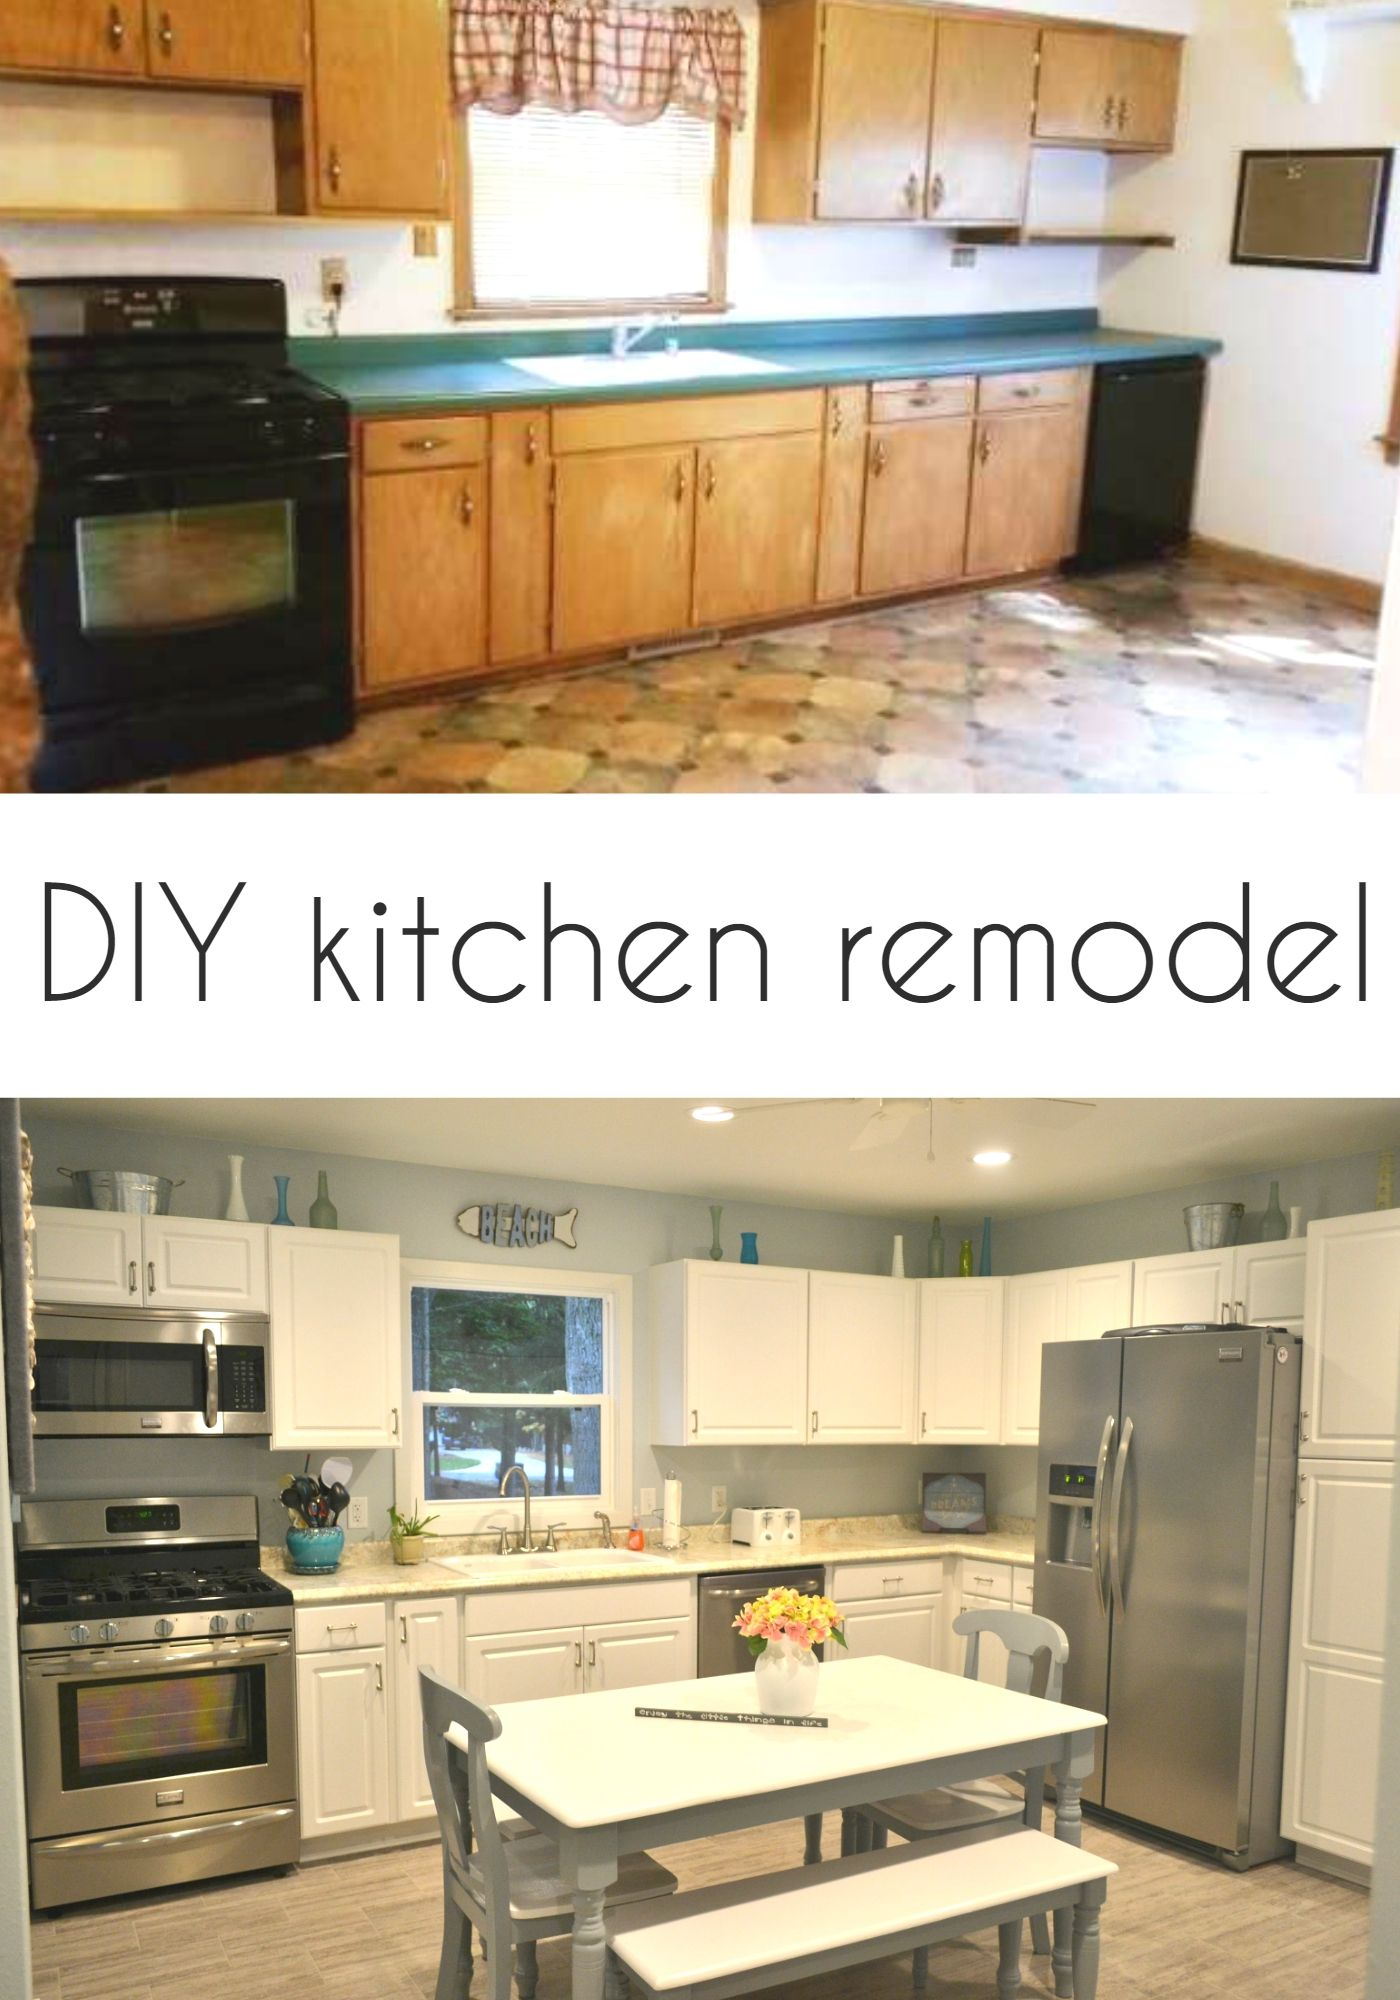 amazing and simple kitchen remodel white kitchen cabinets stainless appliances diy kitchen on kitchen ideas simple id=94832